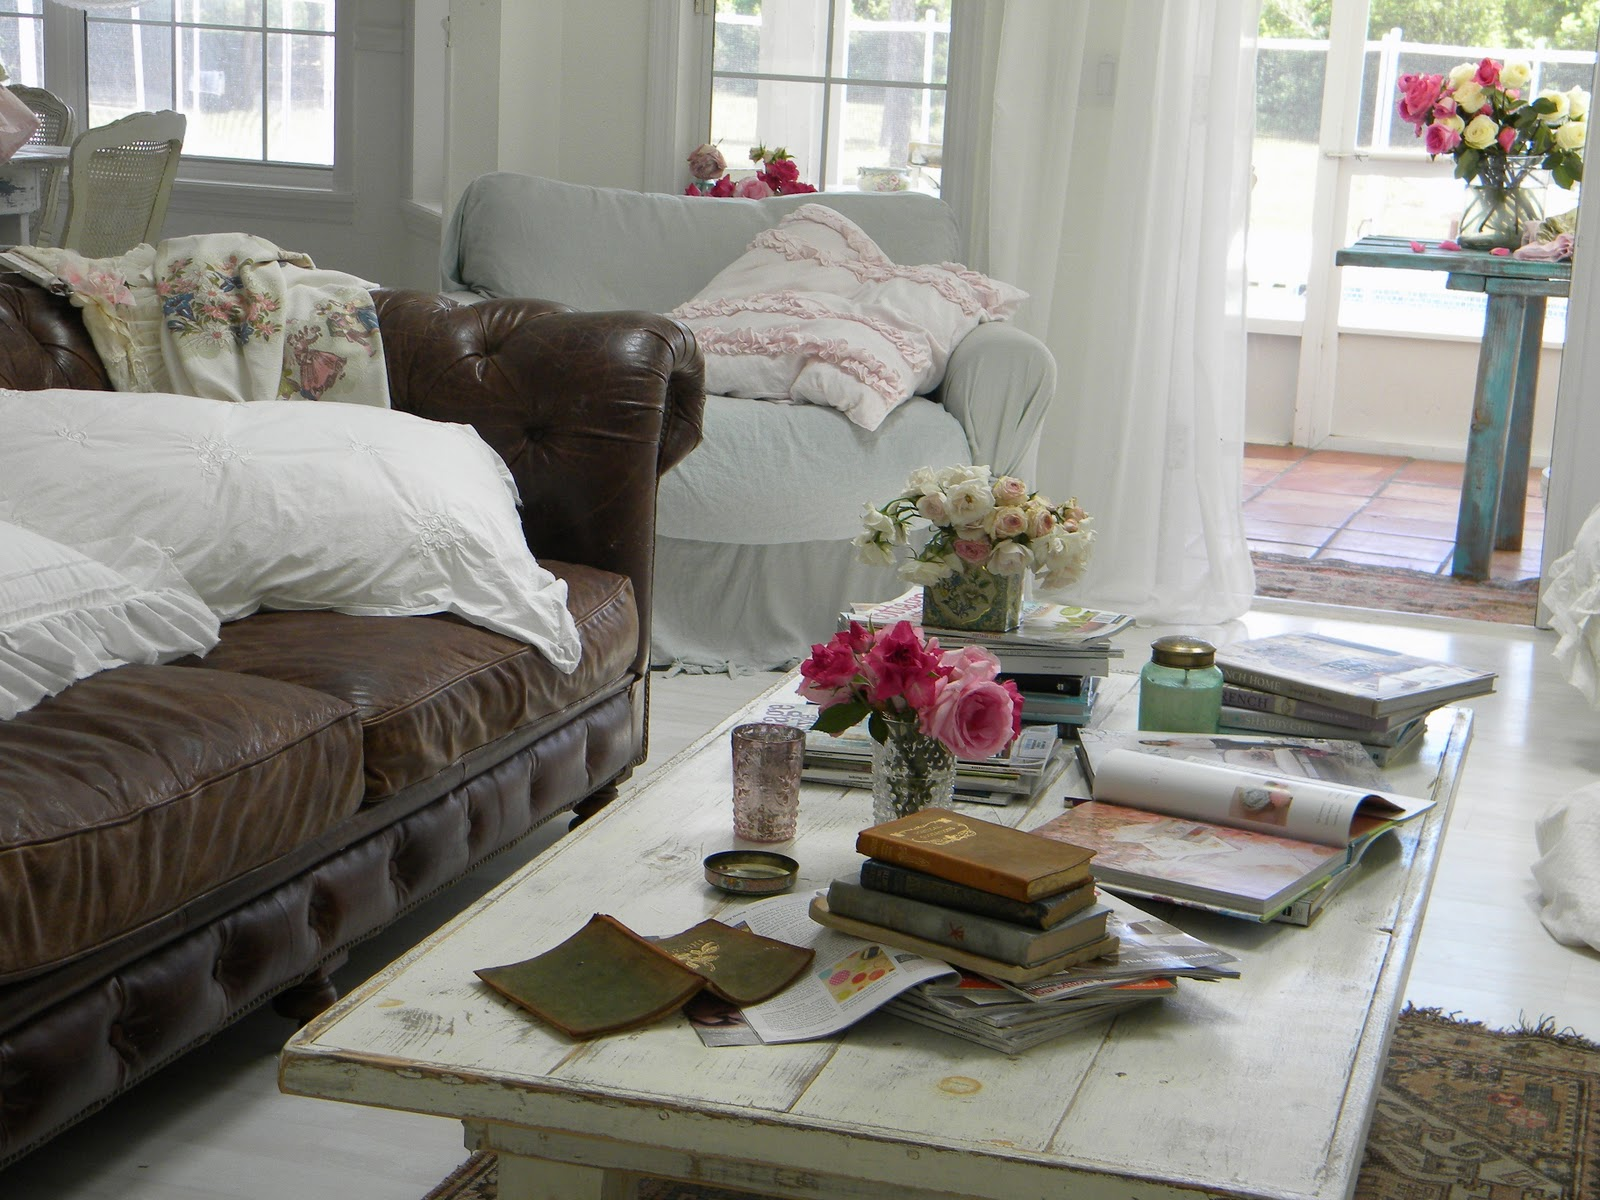 Brown Sofa Room Decor Bristol Bay Sectional All That Jazz Vintage Help Me With Bedding